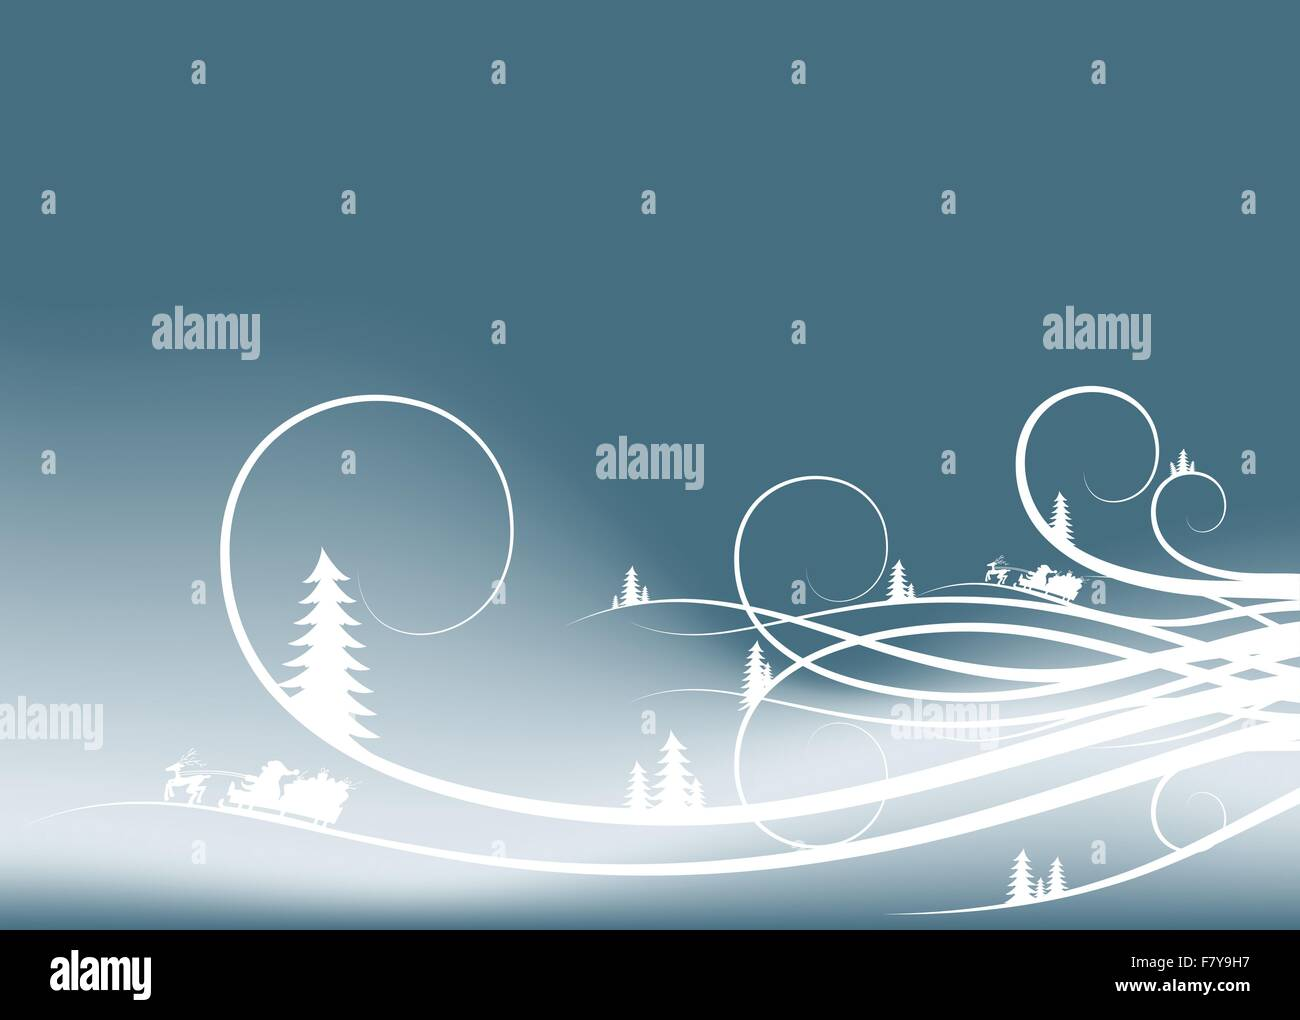 abstract winter background with firtree silhouettes and Santa - Stock Image